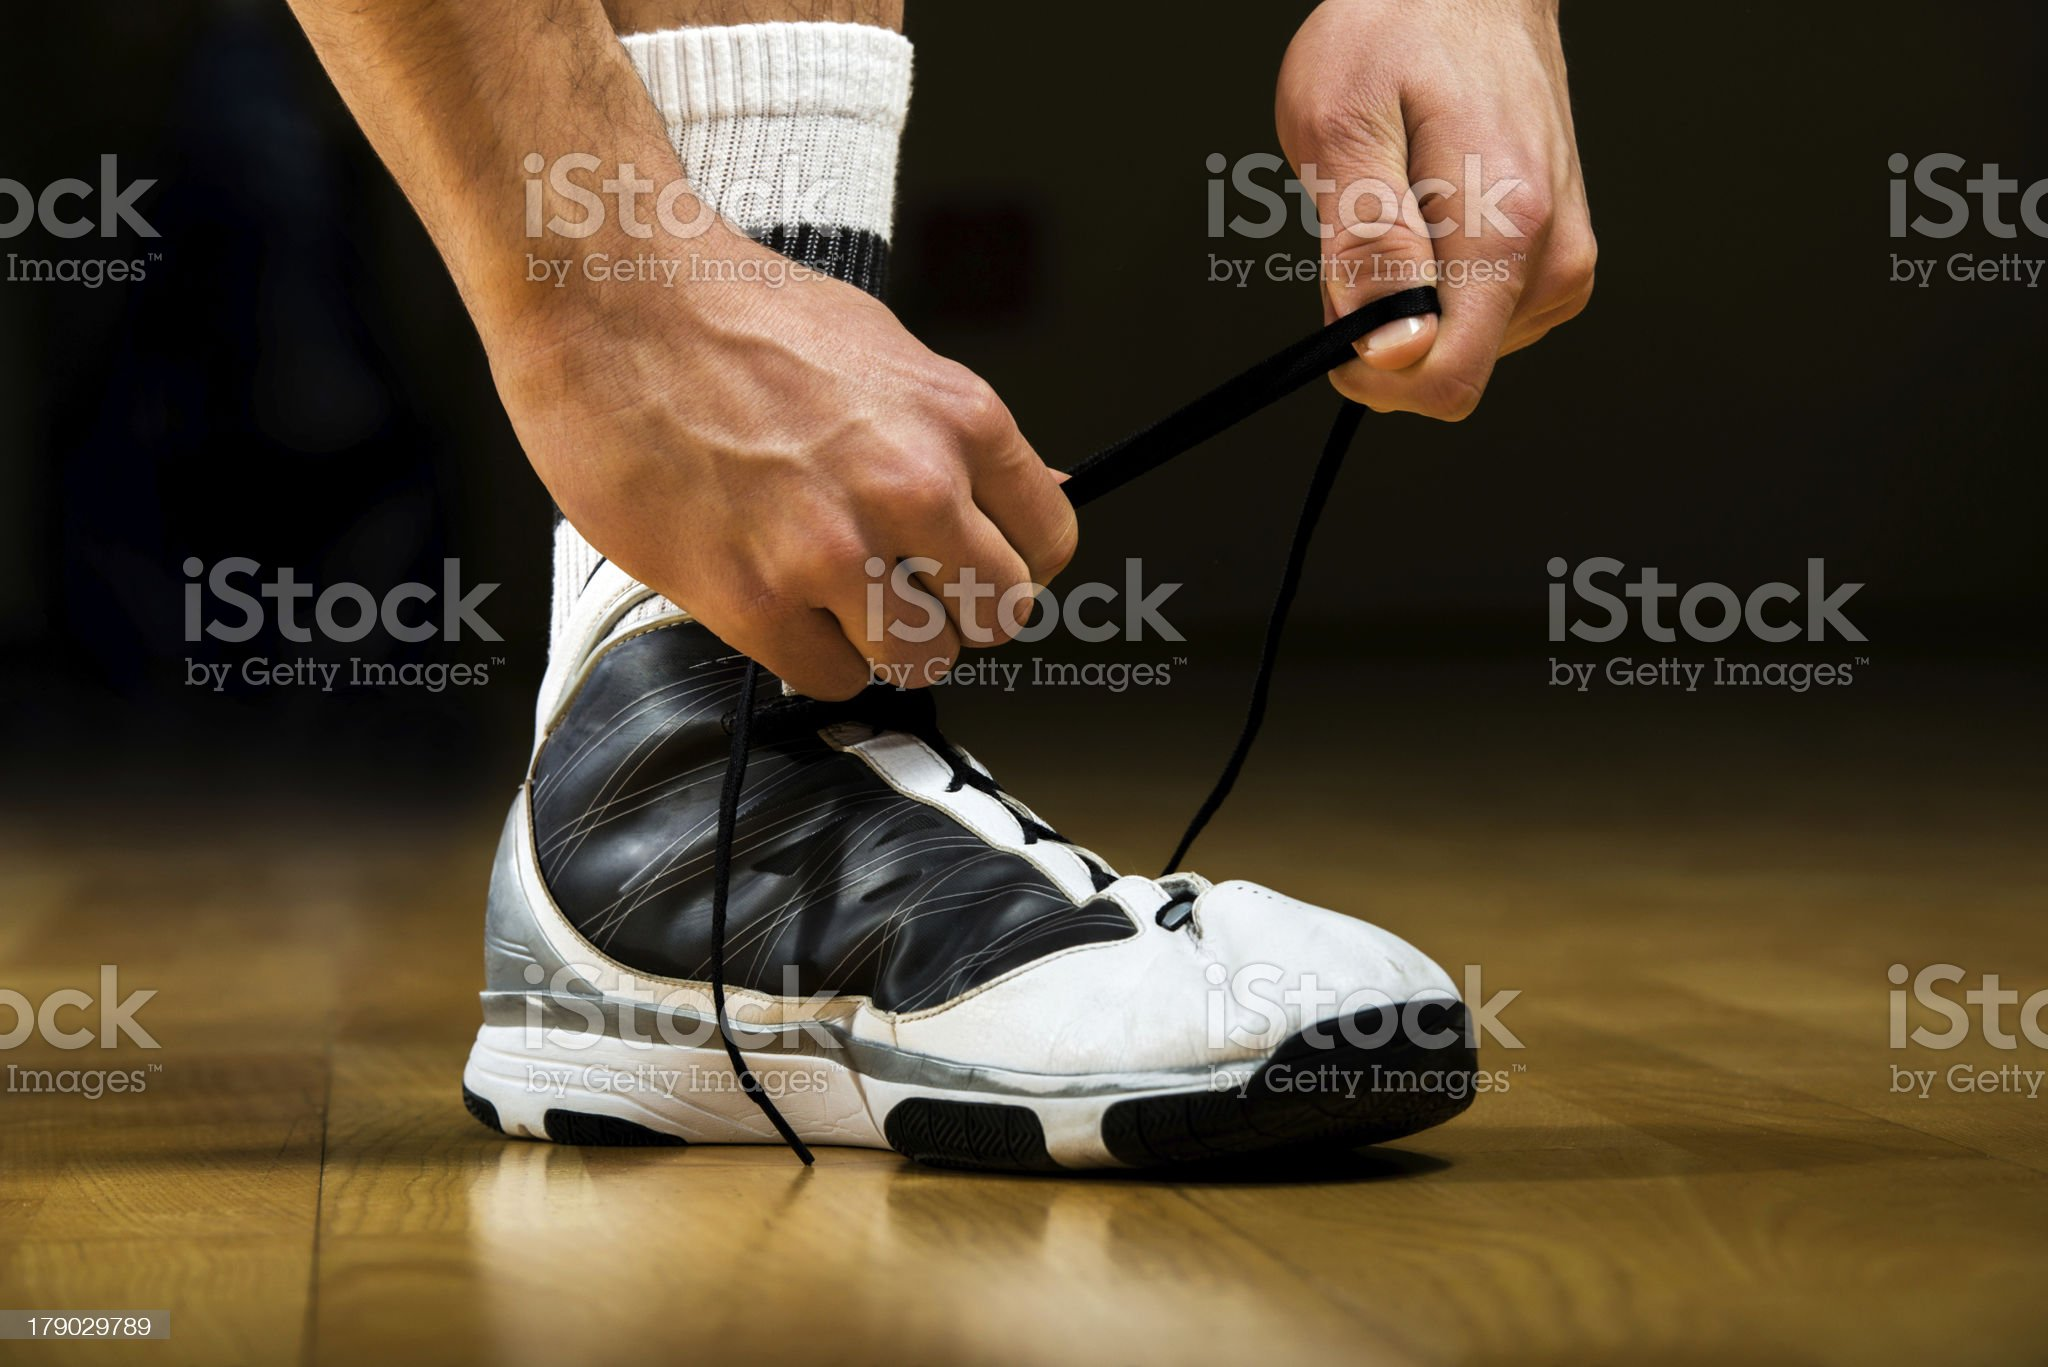 Basketball player tying up shoelaces. royalty-free stock photo